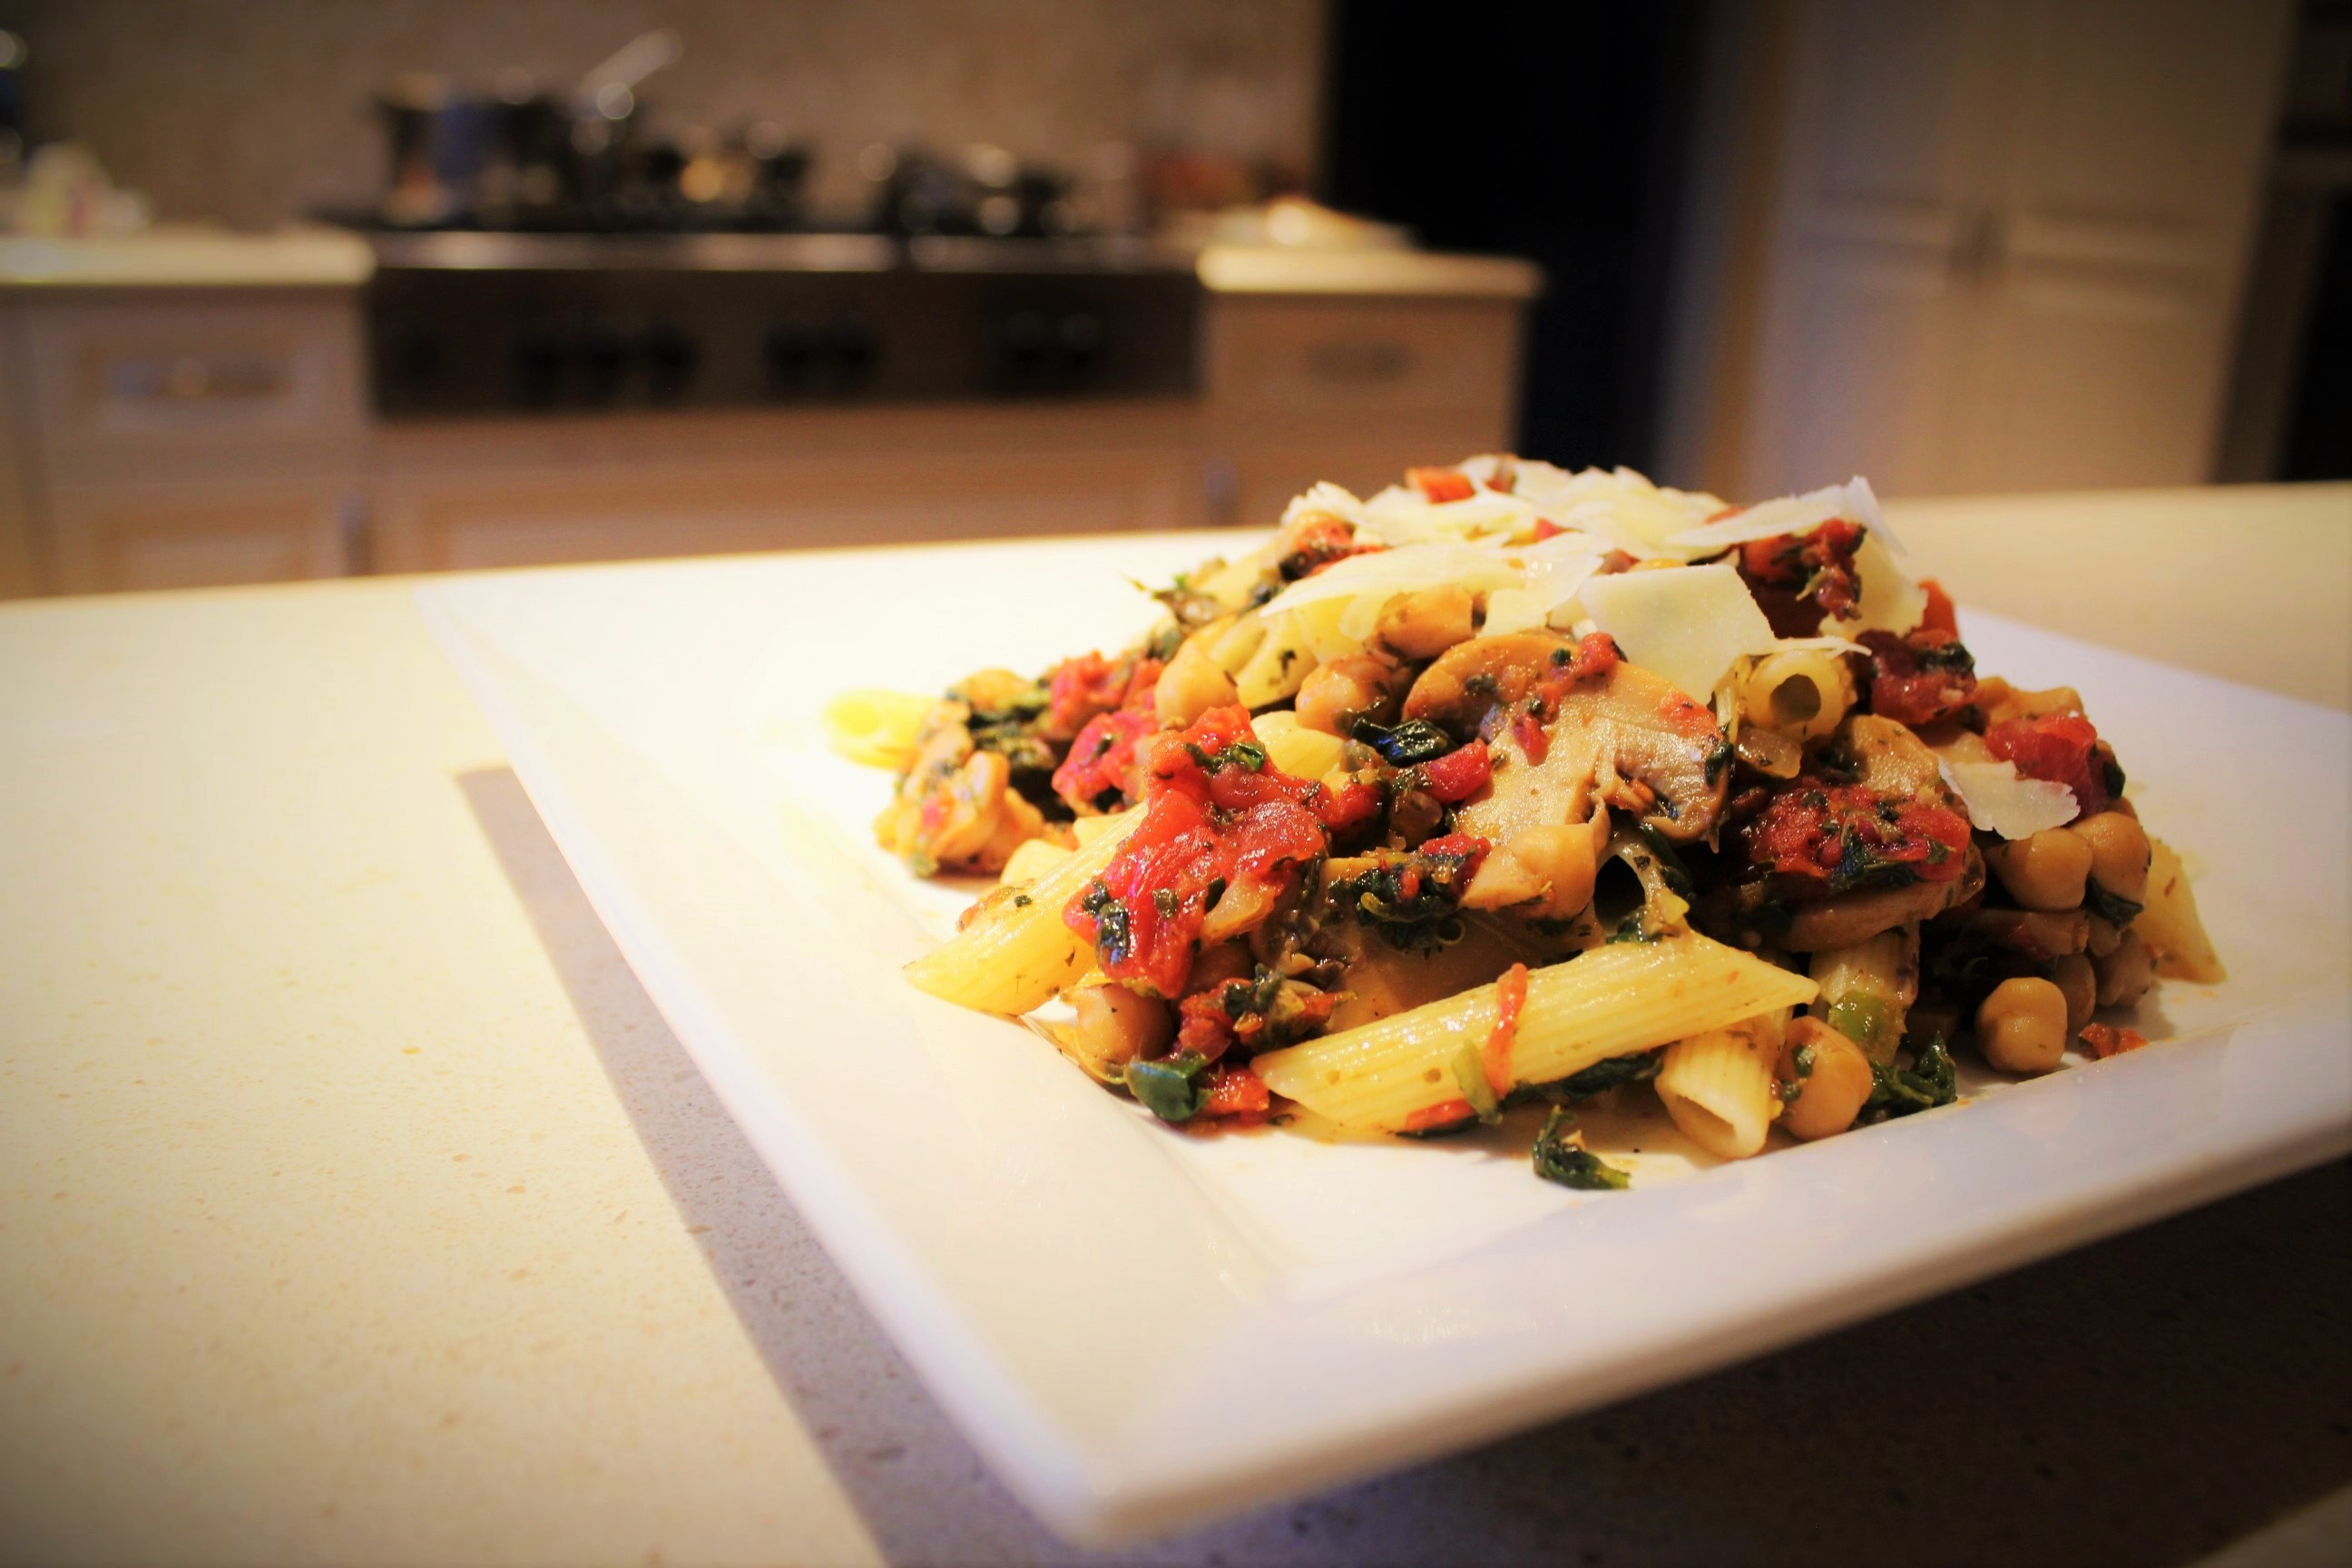 Penne with Chickpeas, Mushrooms, Spinach and Tomatoes